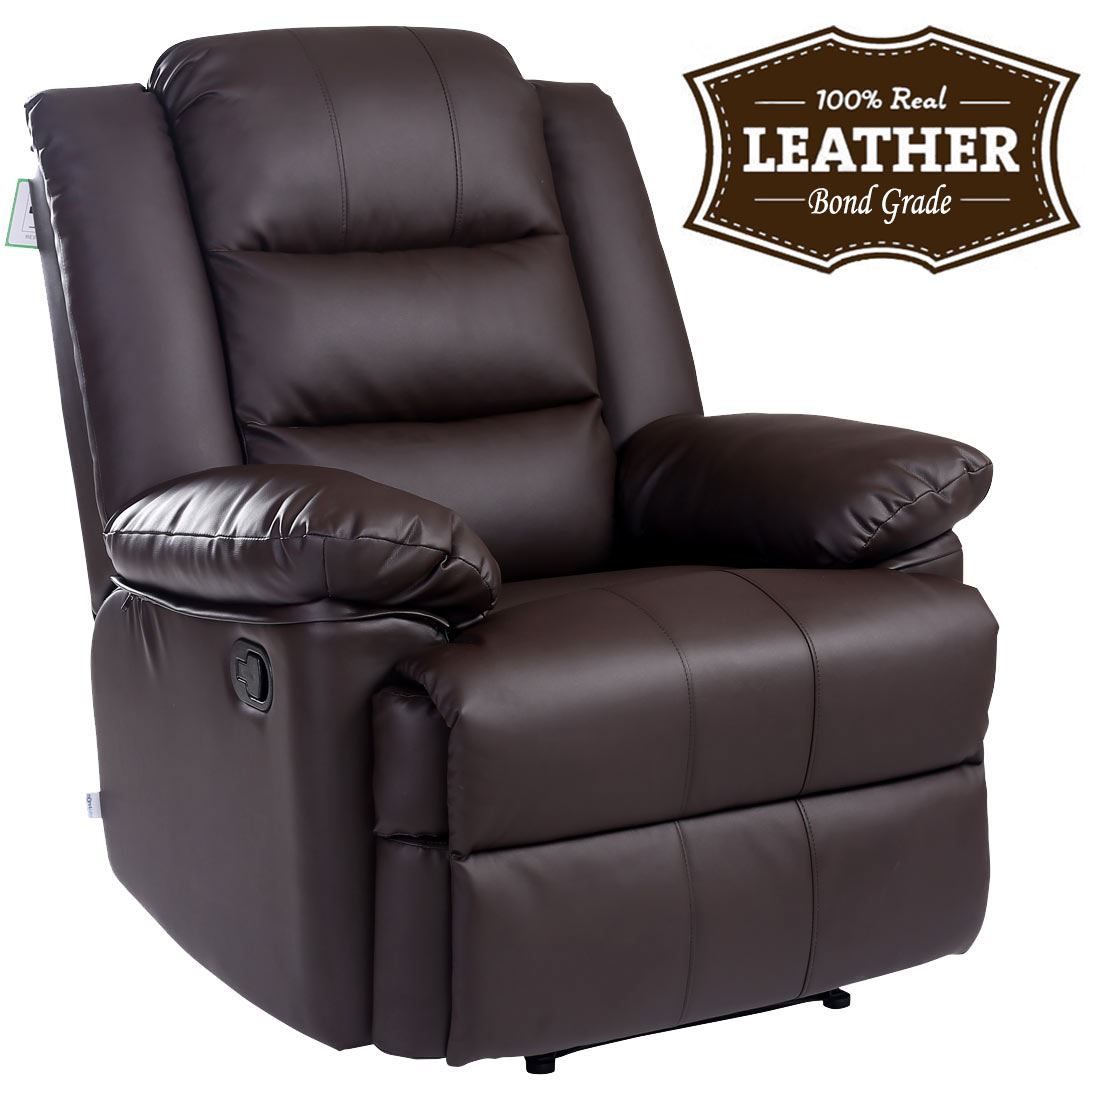 recliner view leather cheyenne furniture marcelina gallery saddle front